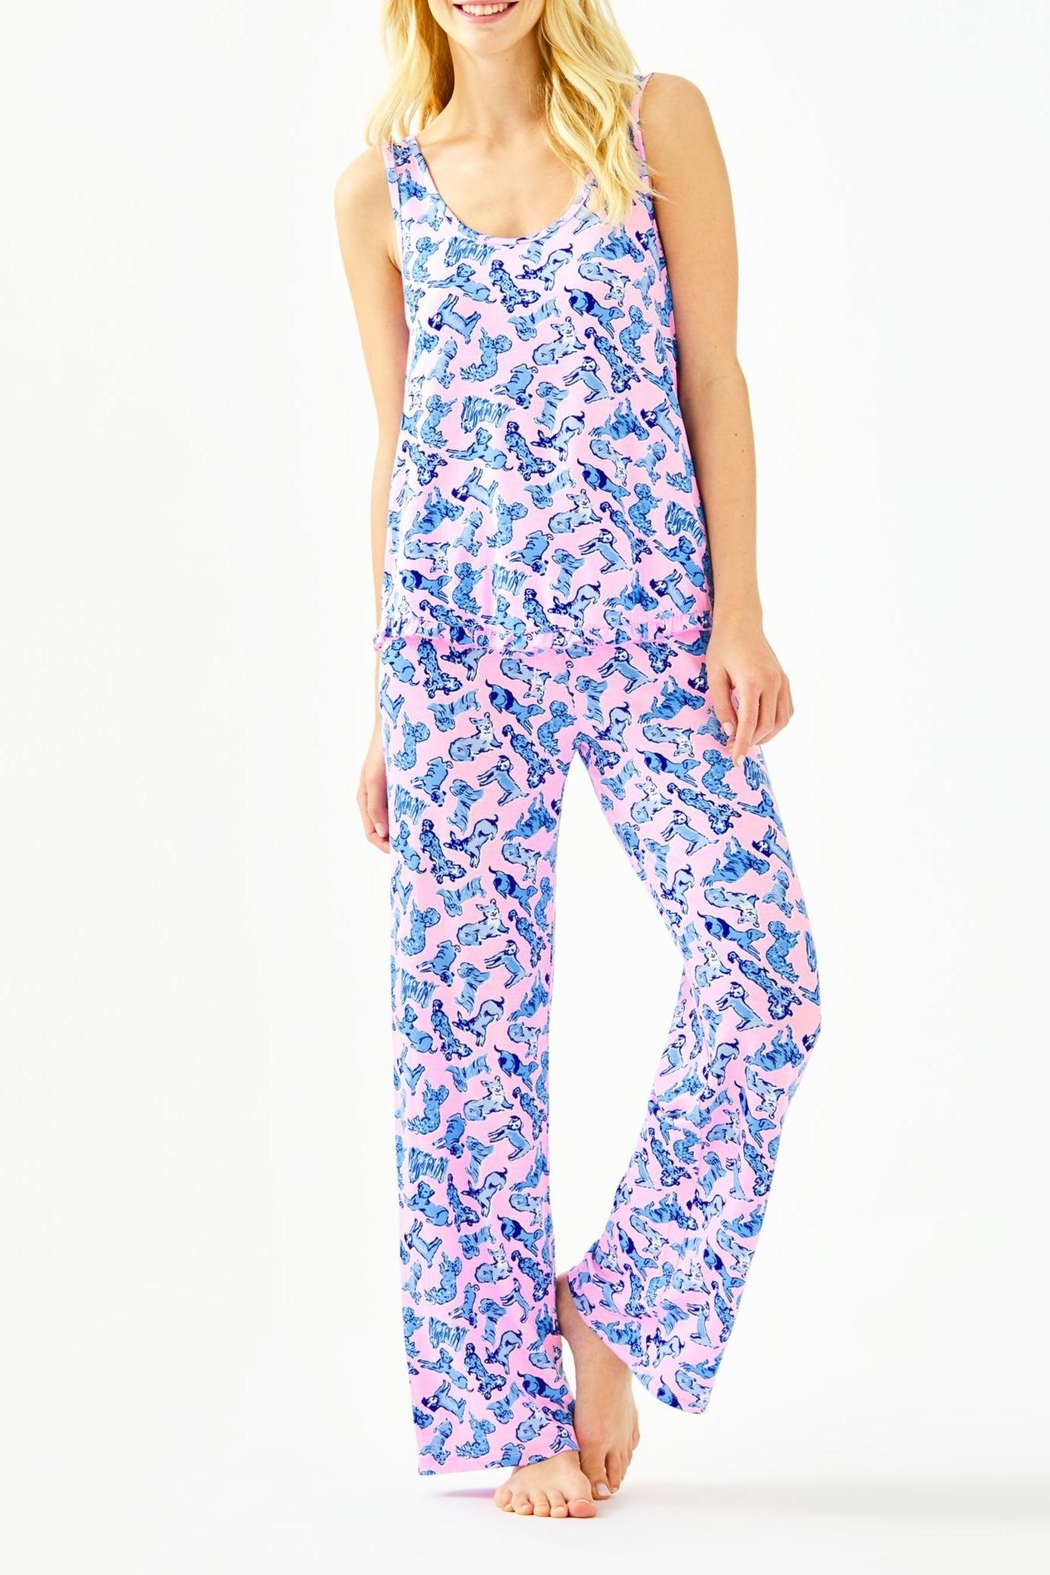 Lilly Pulitzer Ruffle Pj Tank-Top - Side Cropped Image